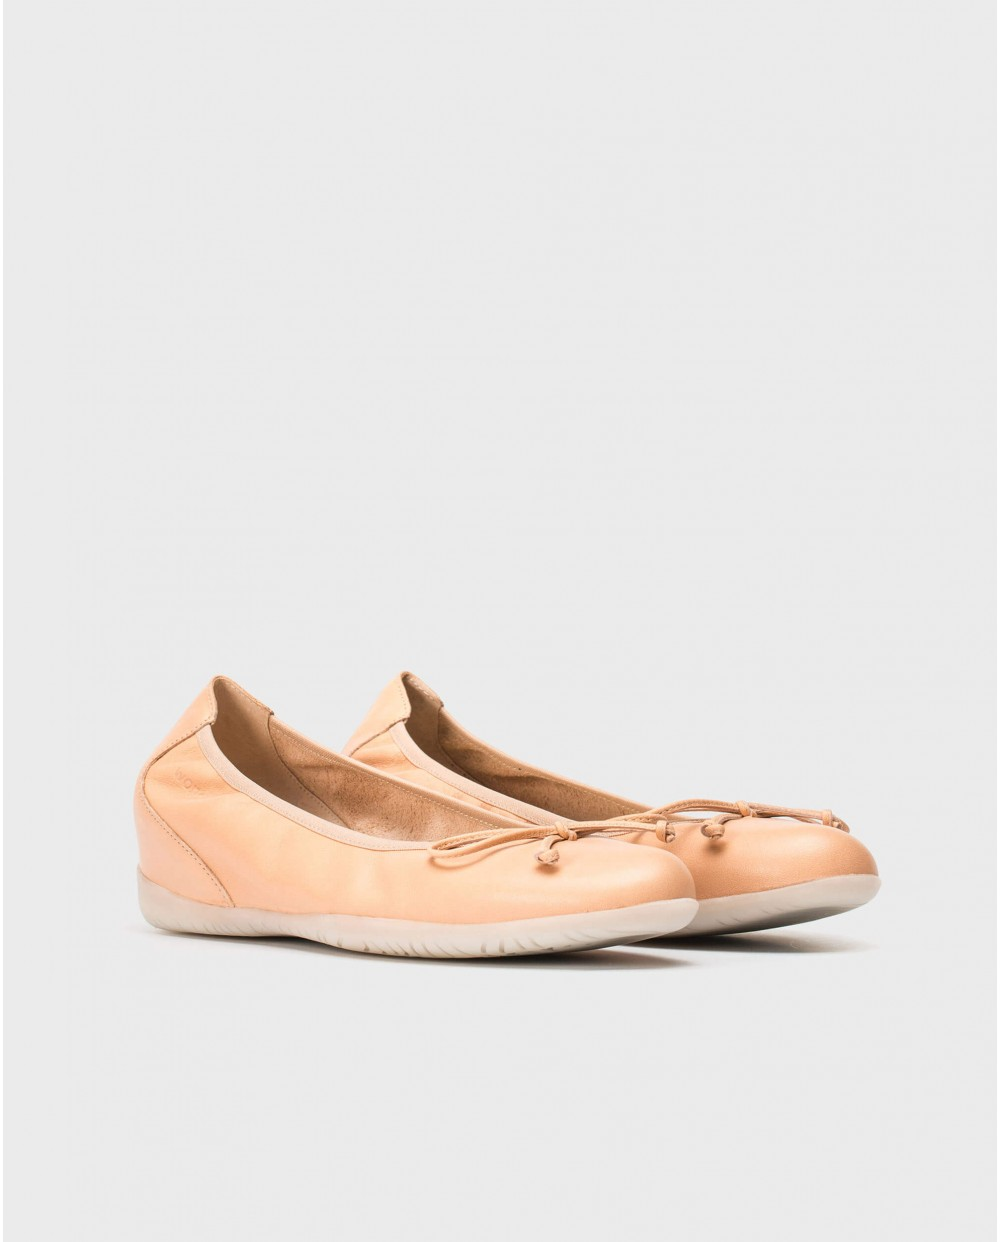 Wonders-Outlet-Ballet pump with bow detail